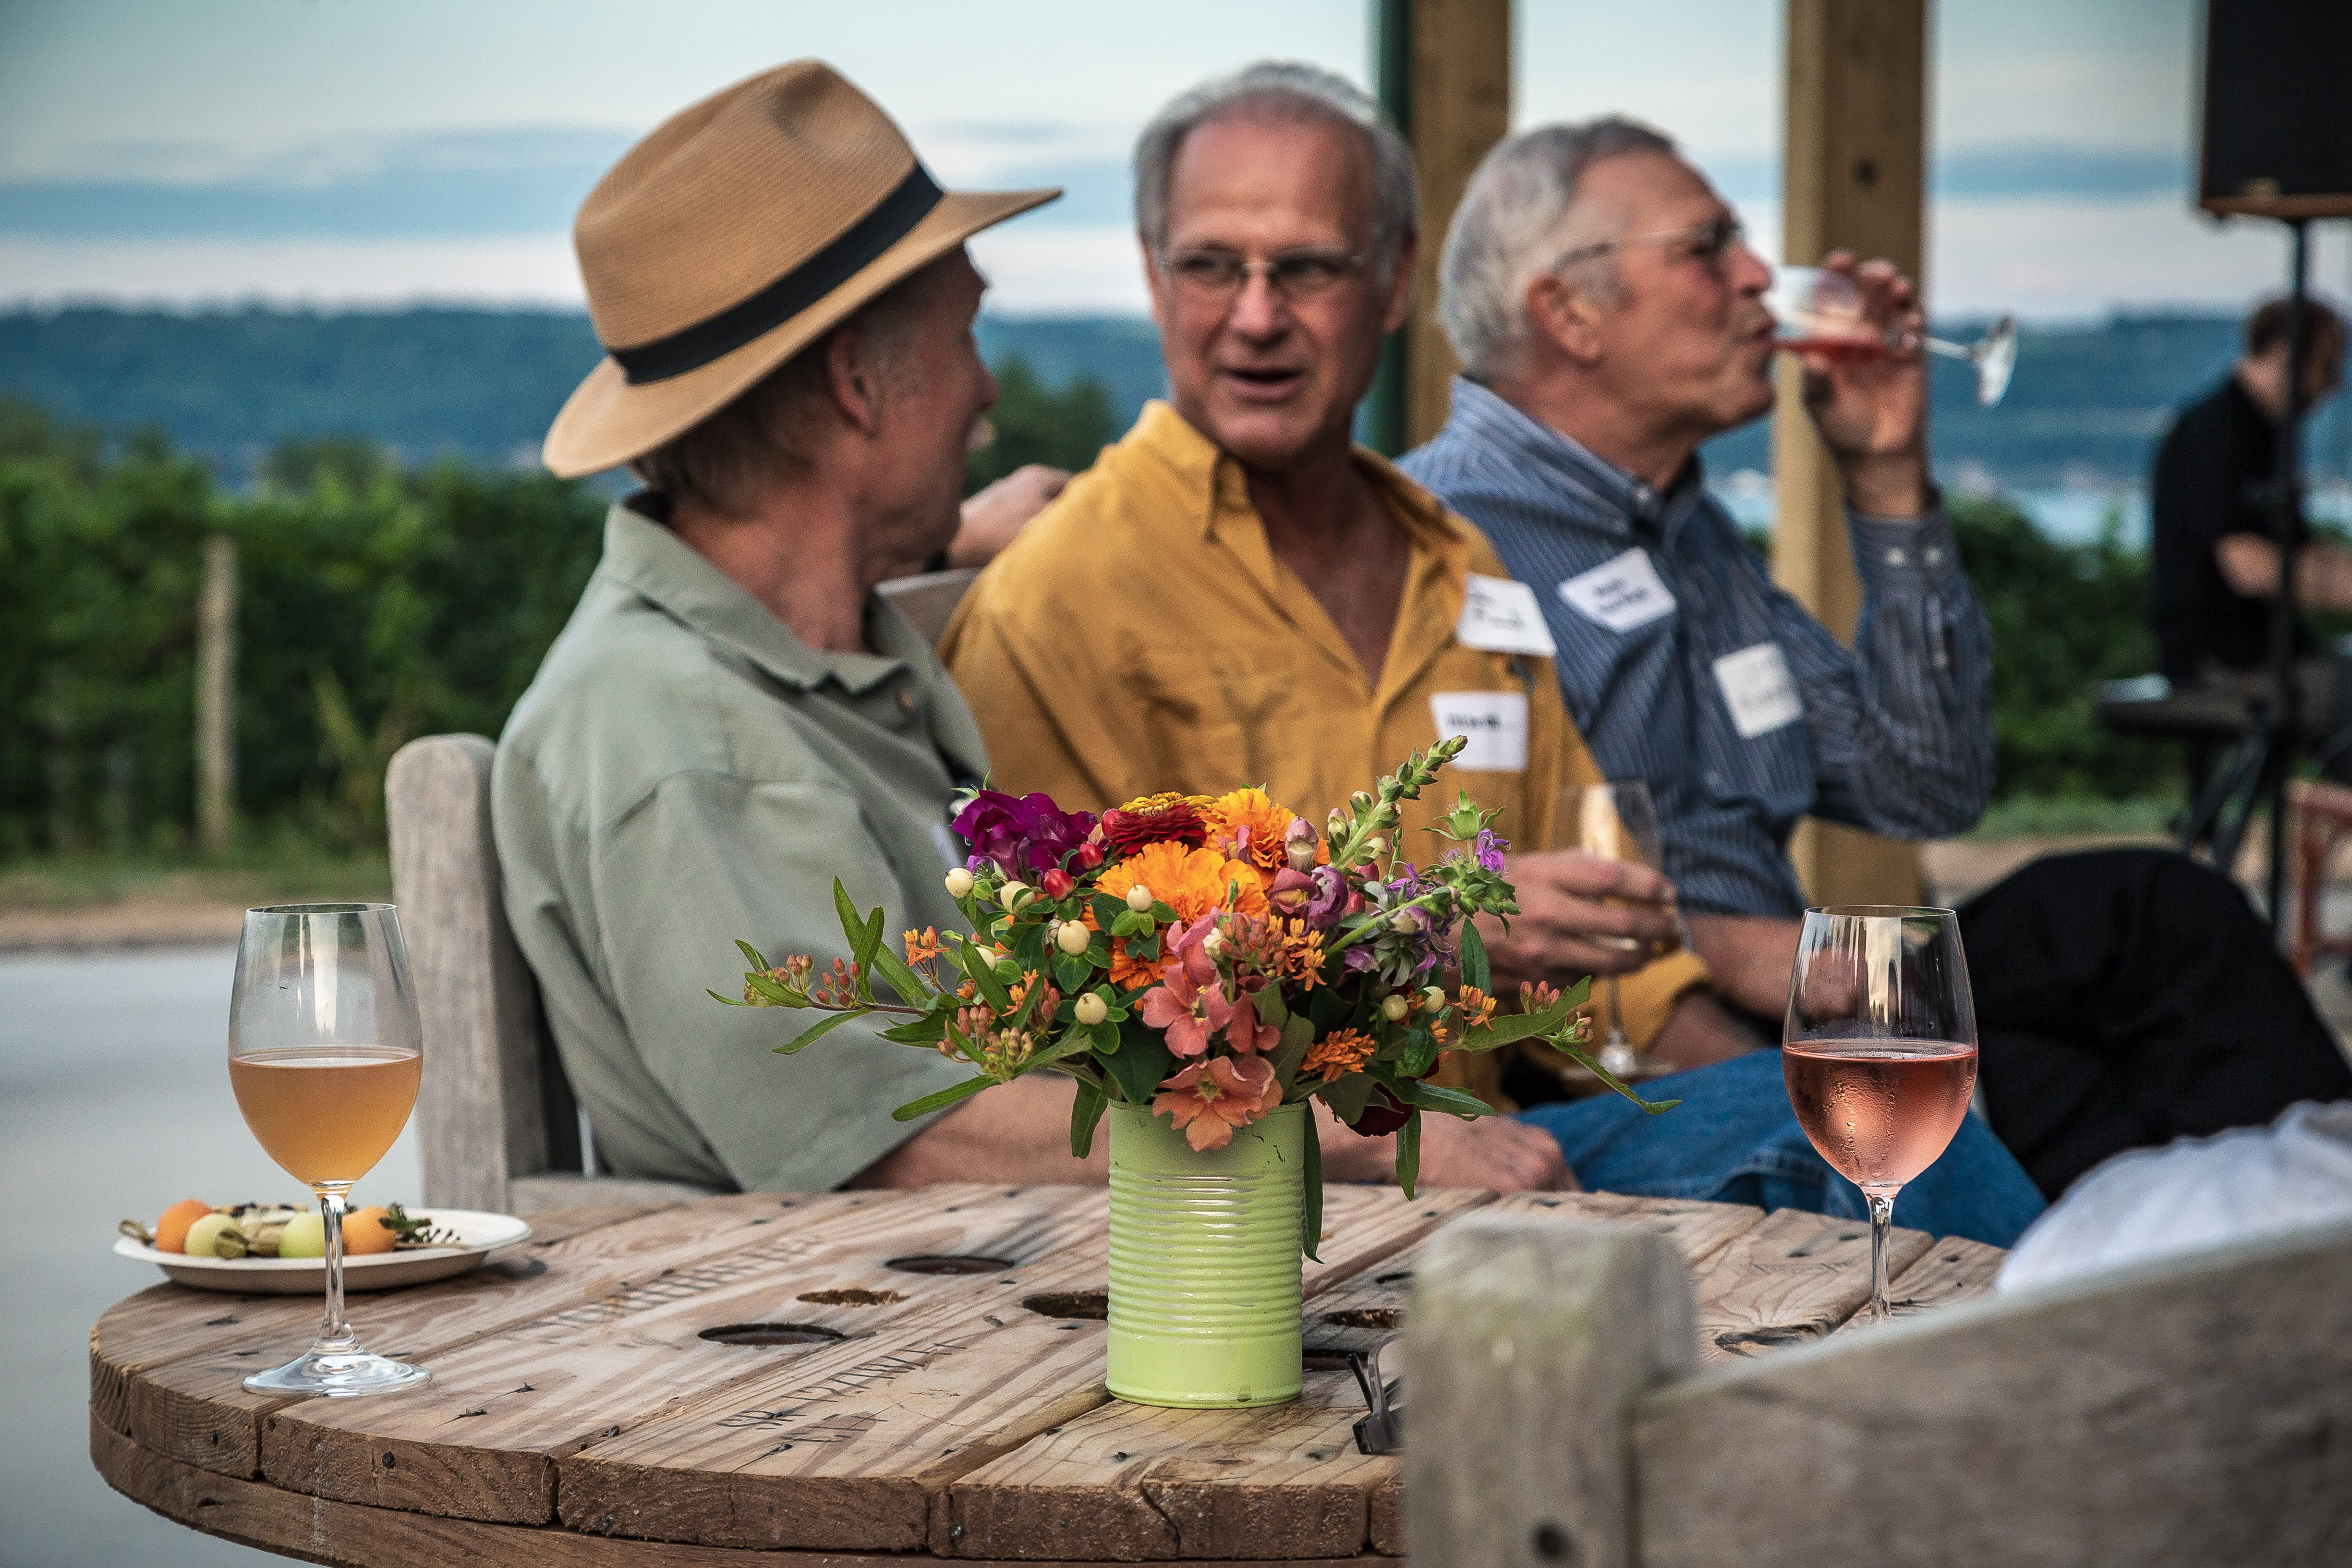 Outdoor dining with wine and appetizers at Sheldrake Point Winery in Ovid, NY